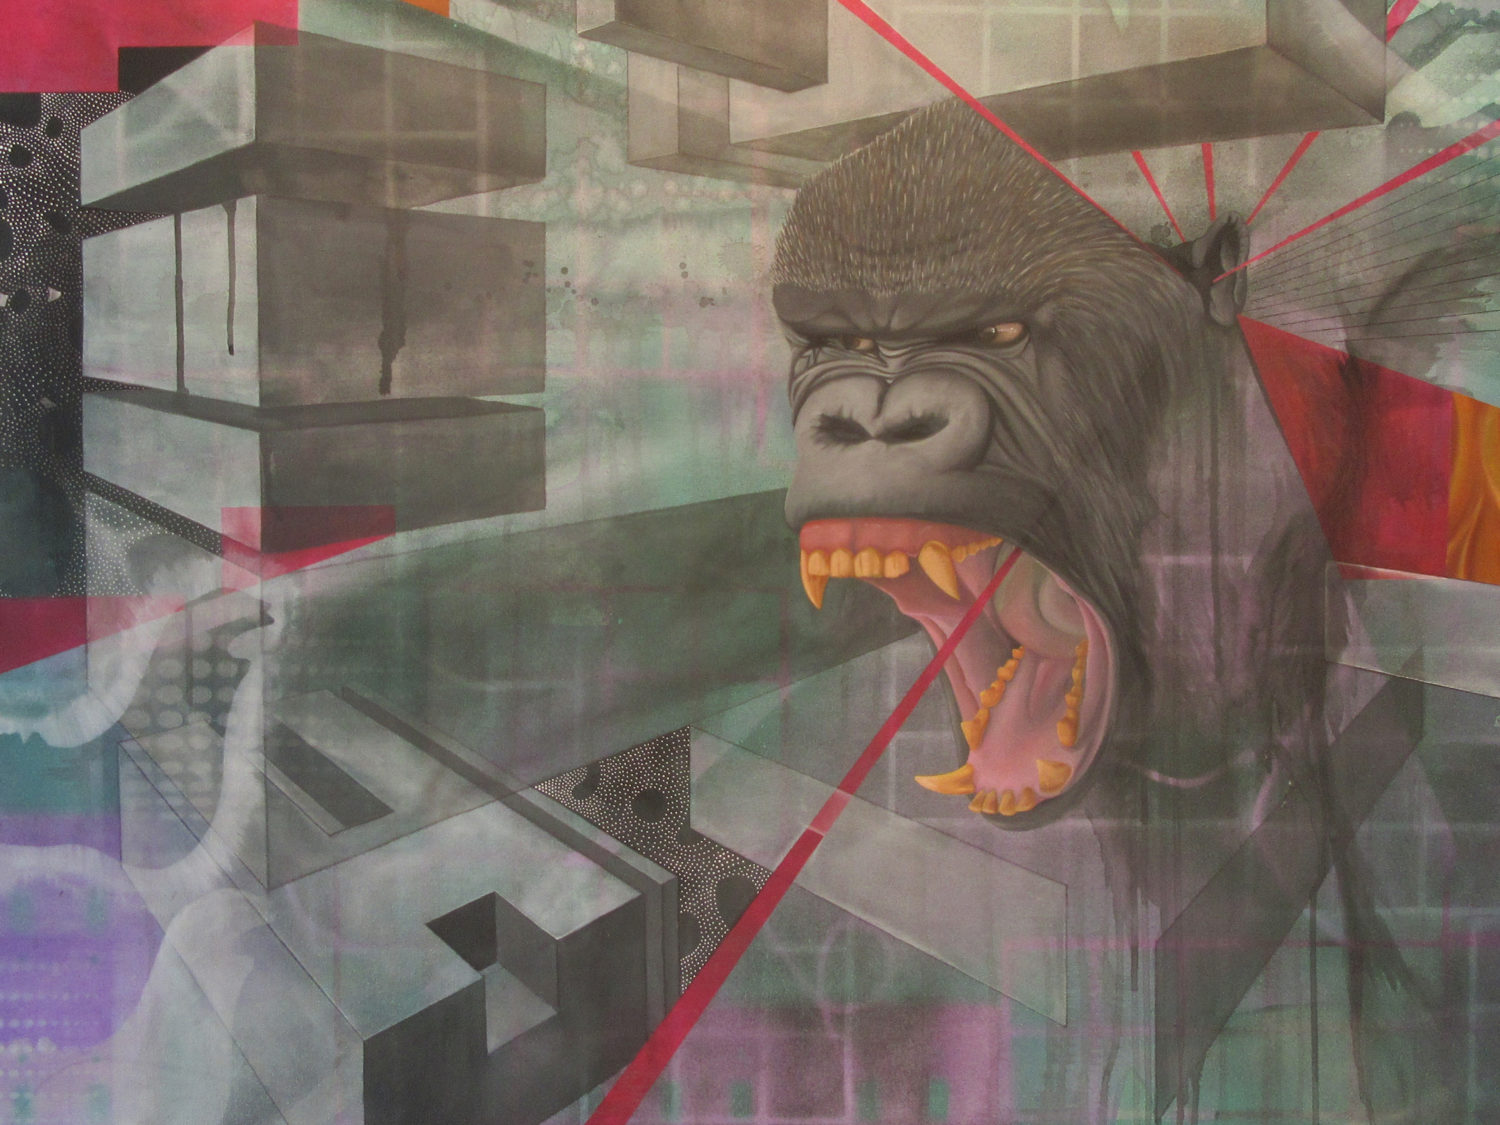 Art by Gabriel Lovejoy from Positional Ambivalence showing gorilla howling